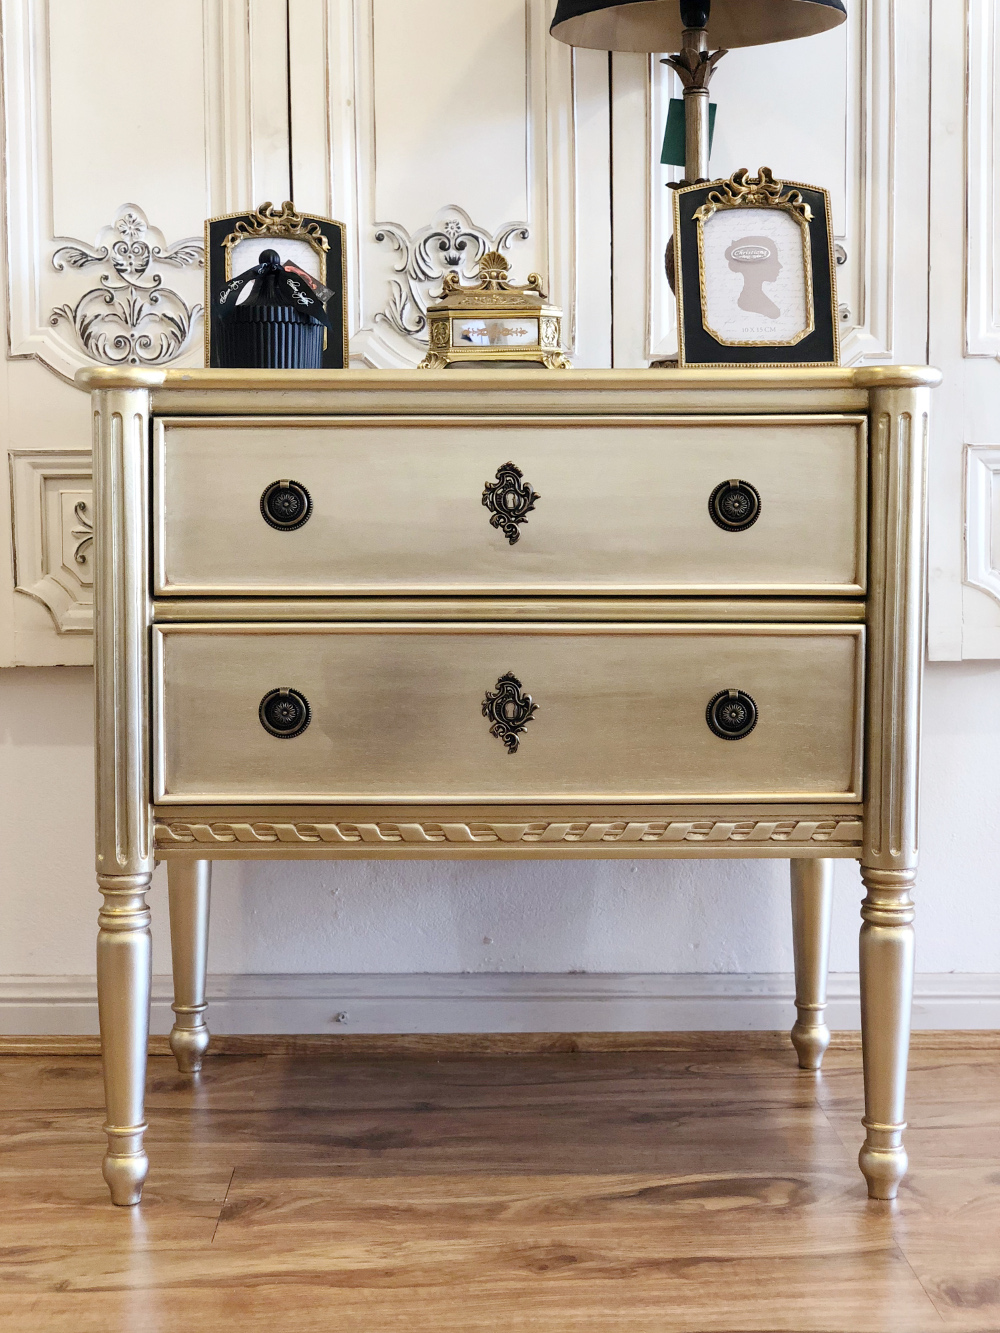 French Provincial Montreal Bedside, French Provencal Furniture